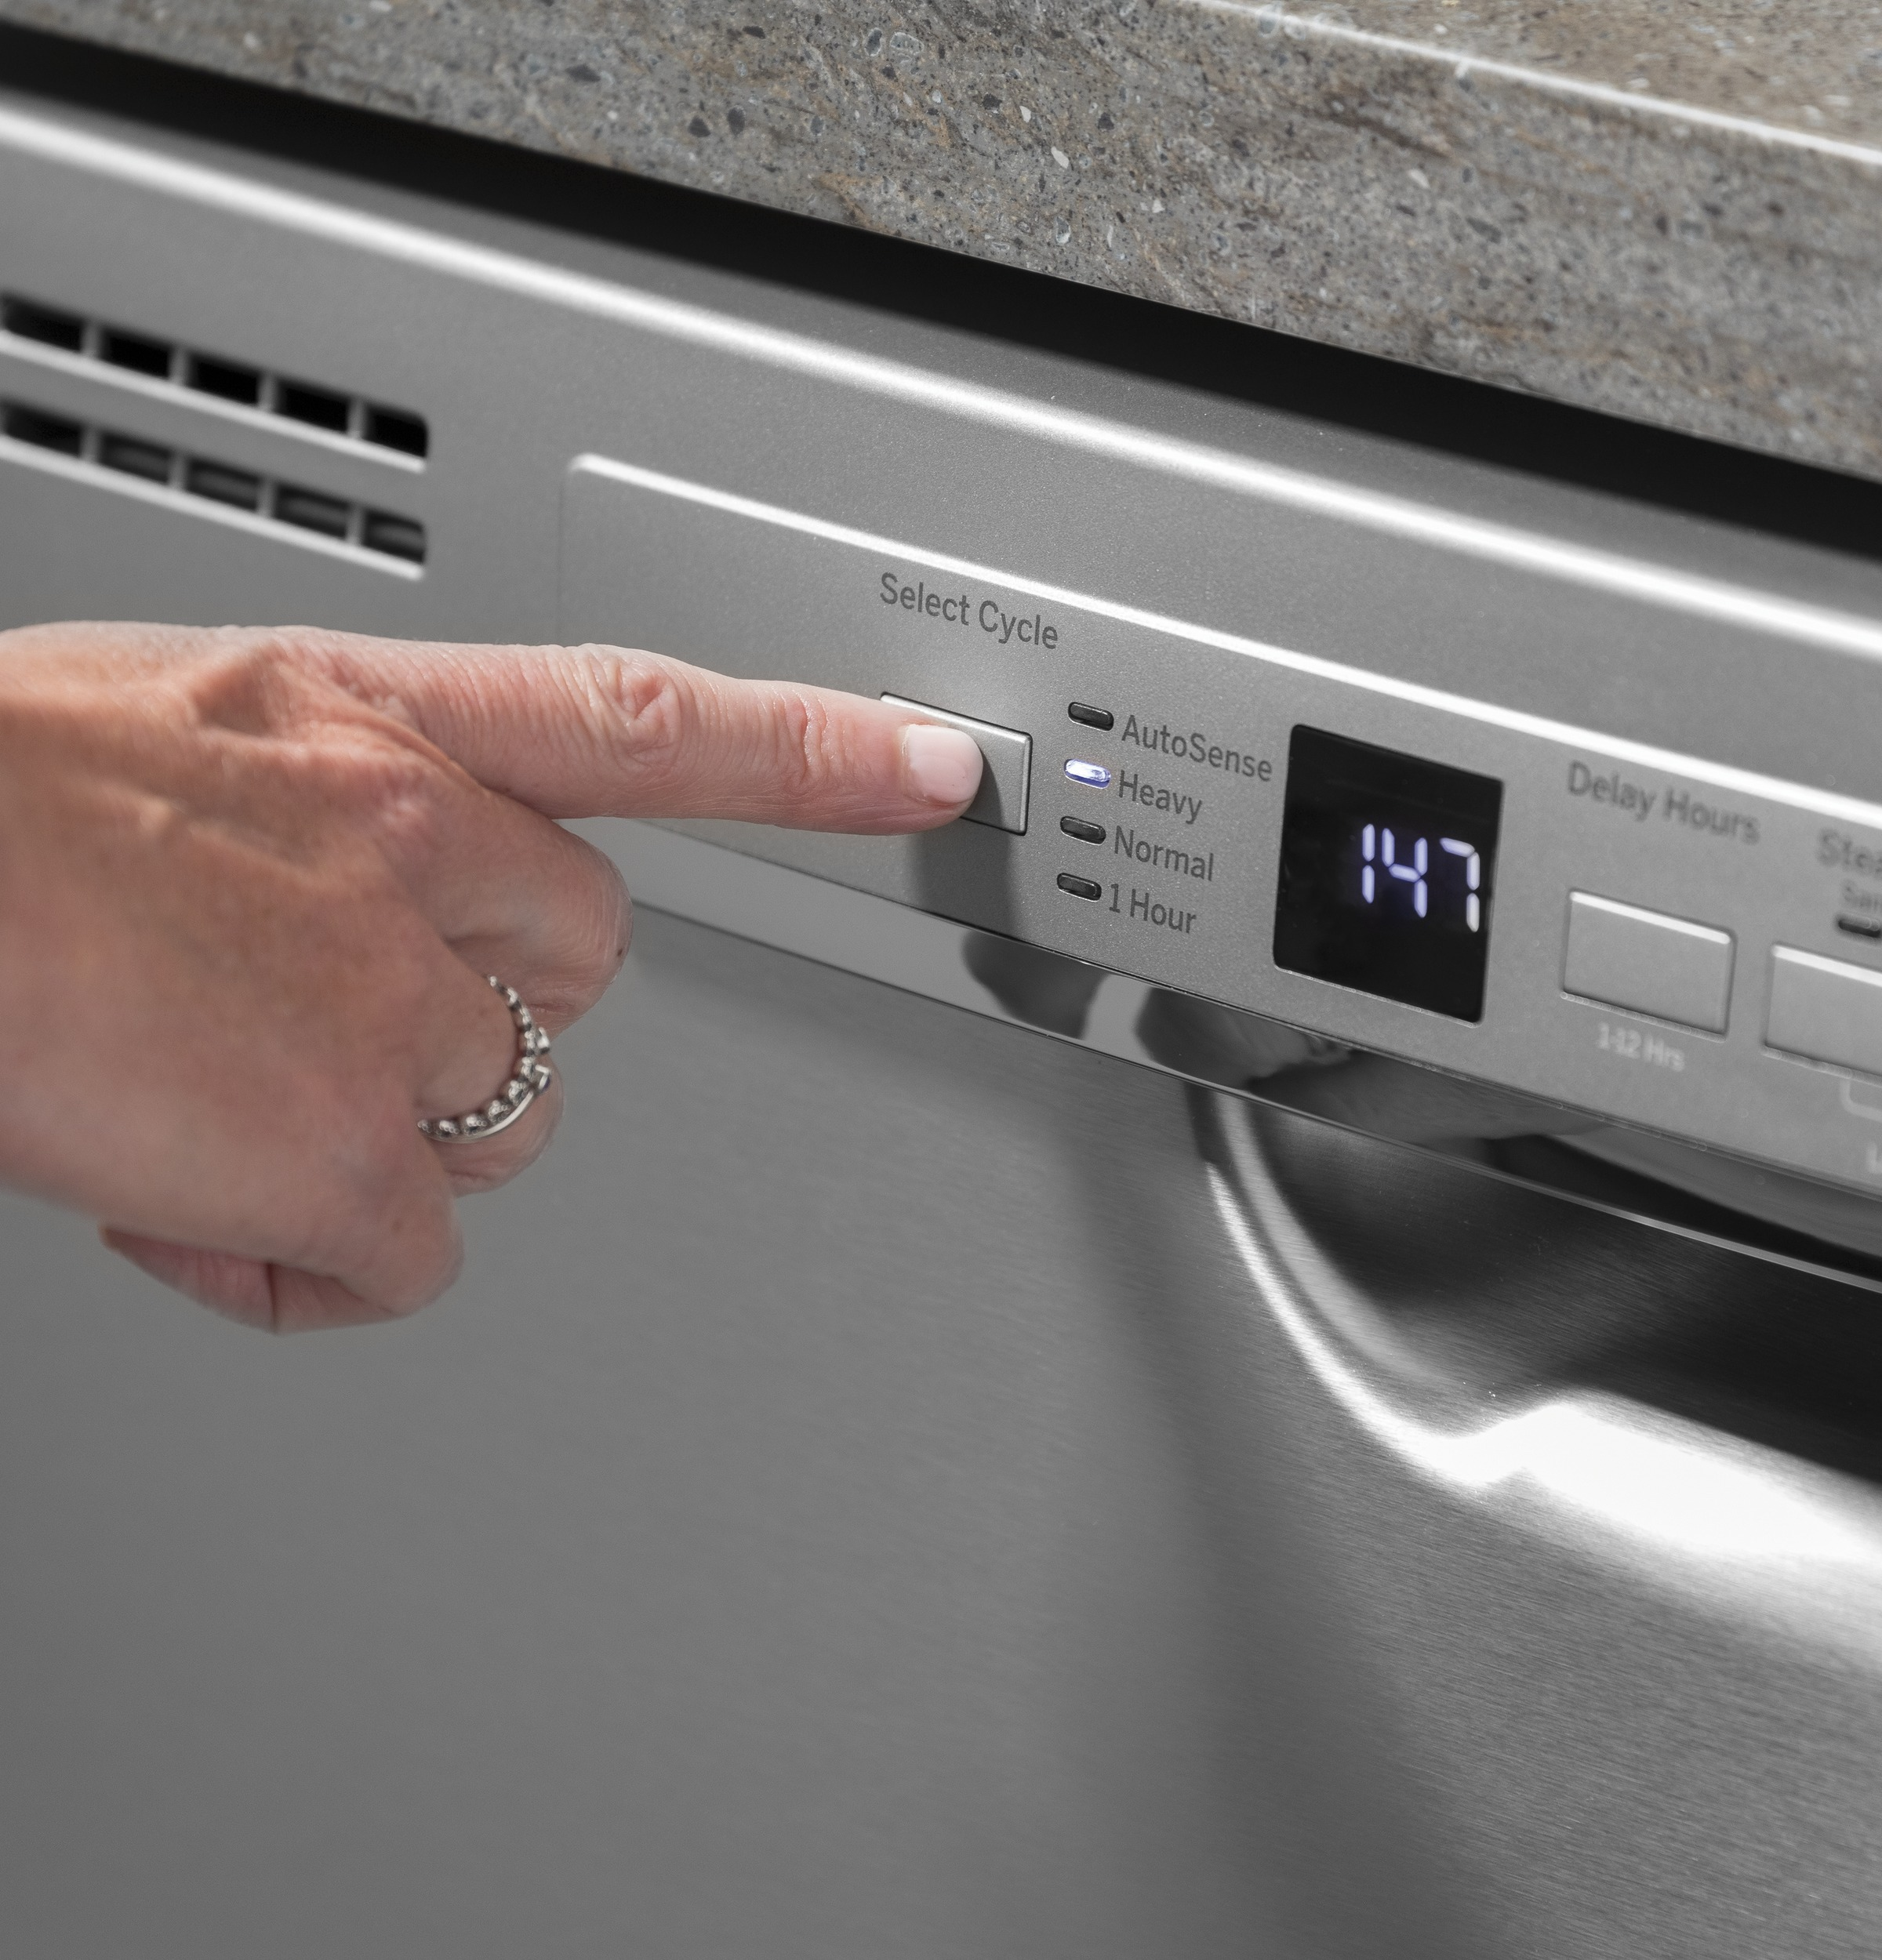 Model: GDF511PGMBB | GE GE® Dishwasher with Front Controls and Power Cord